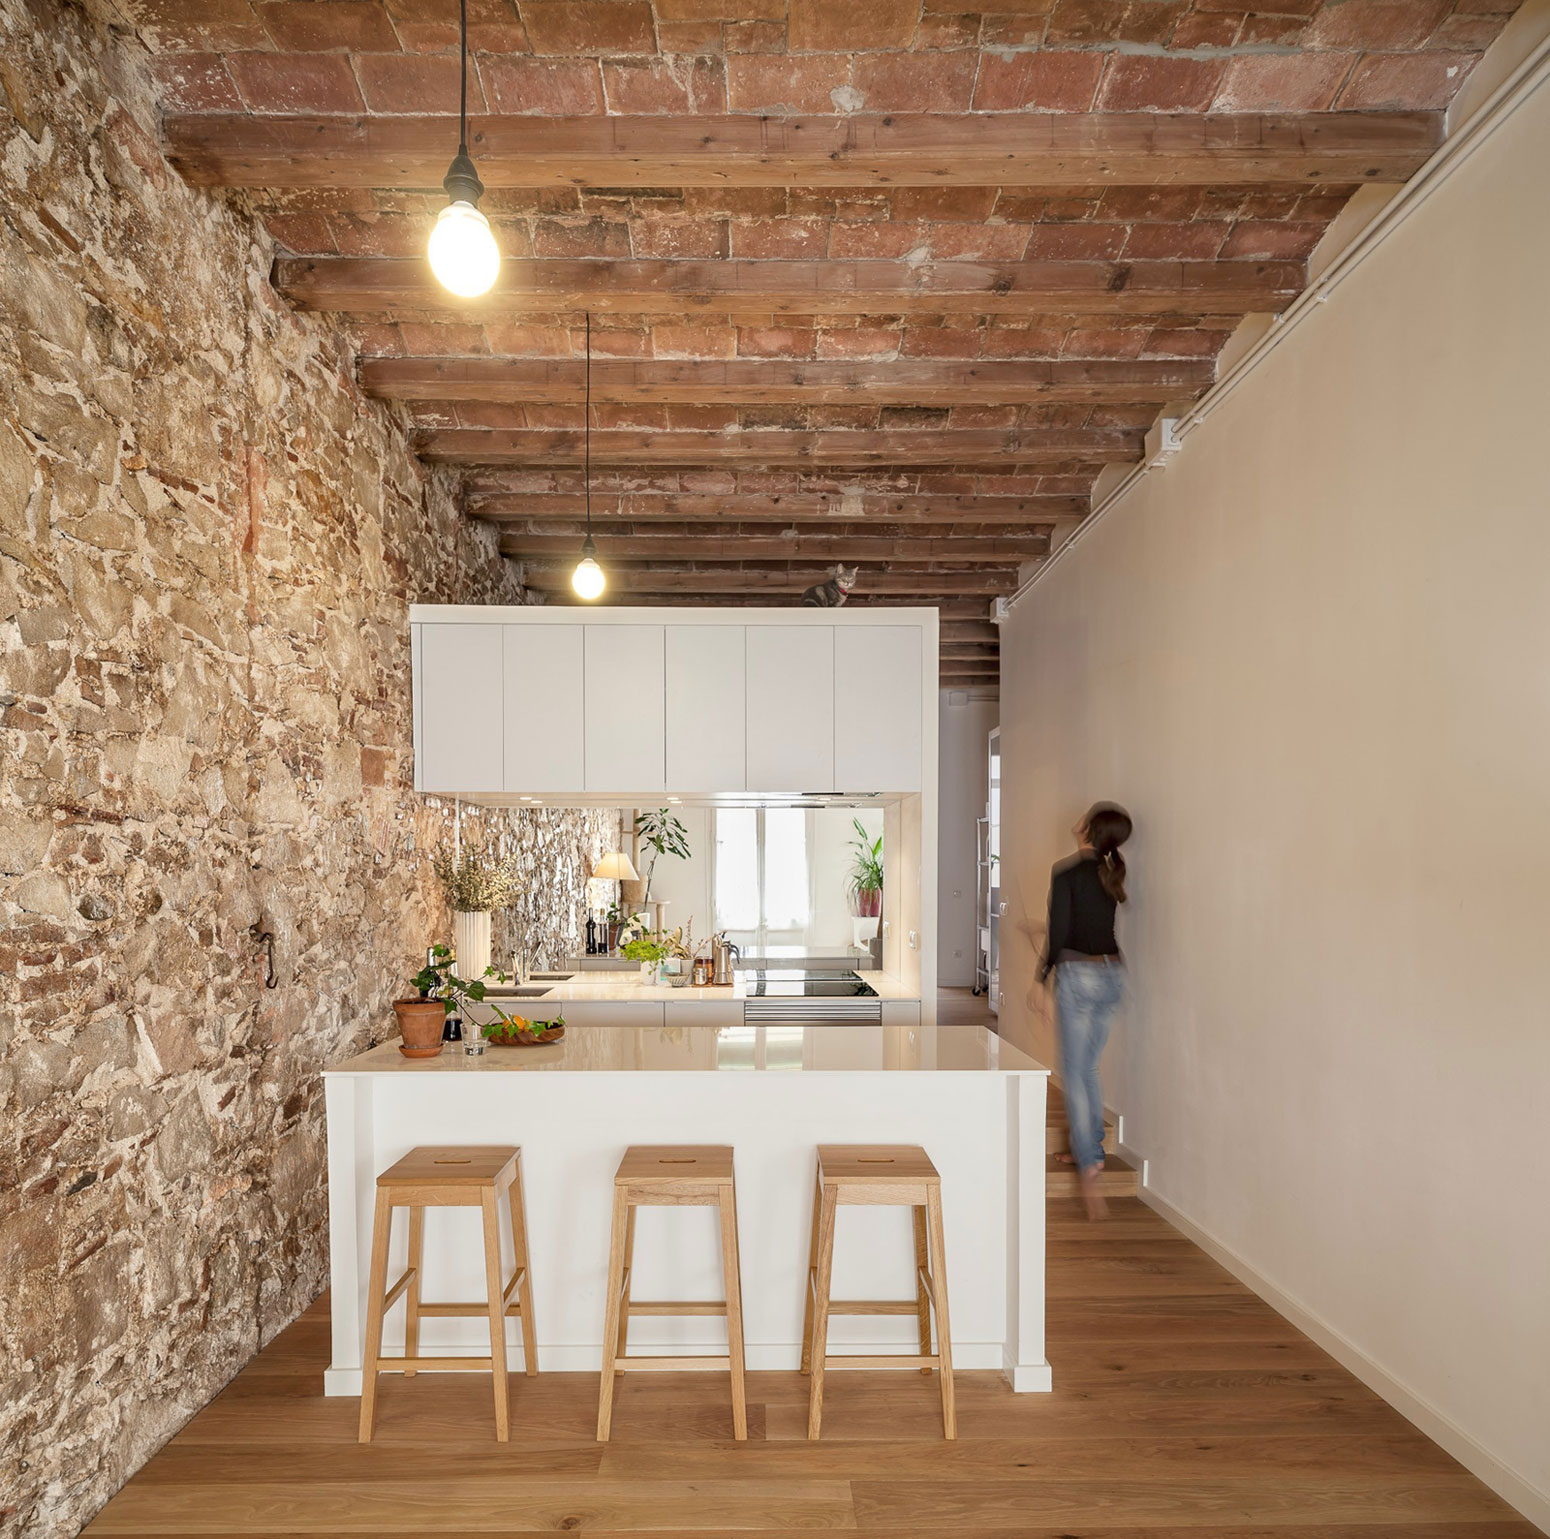 Renovation-Apartment-in-Les-Corts-kitchen